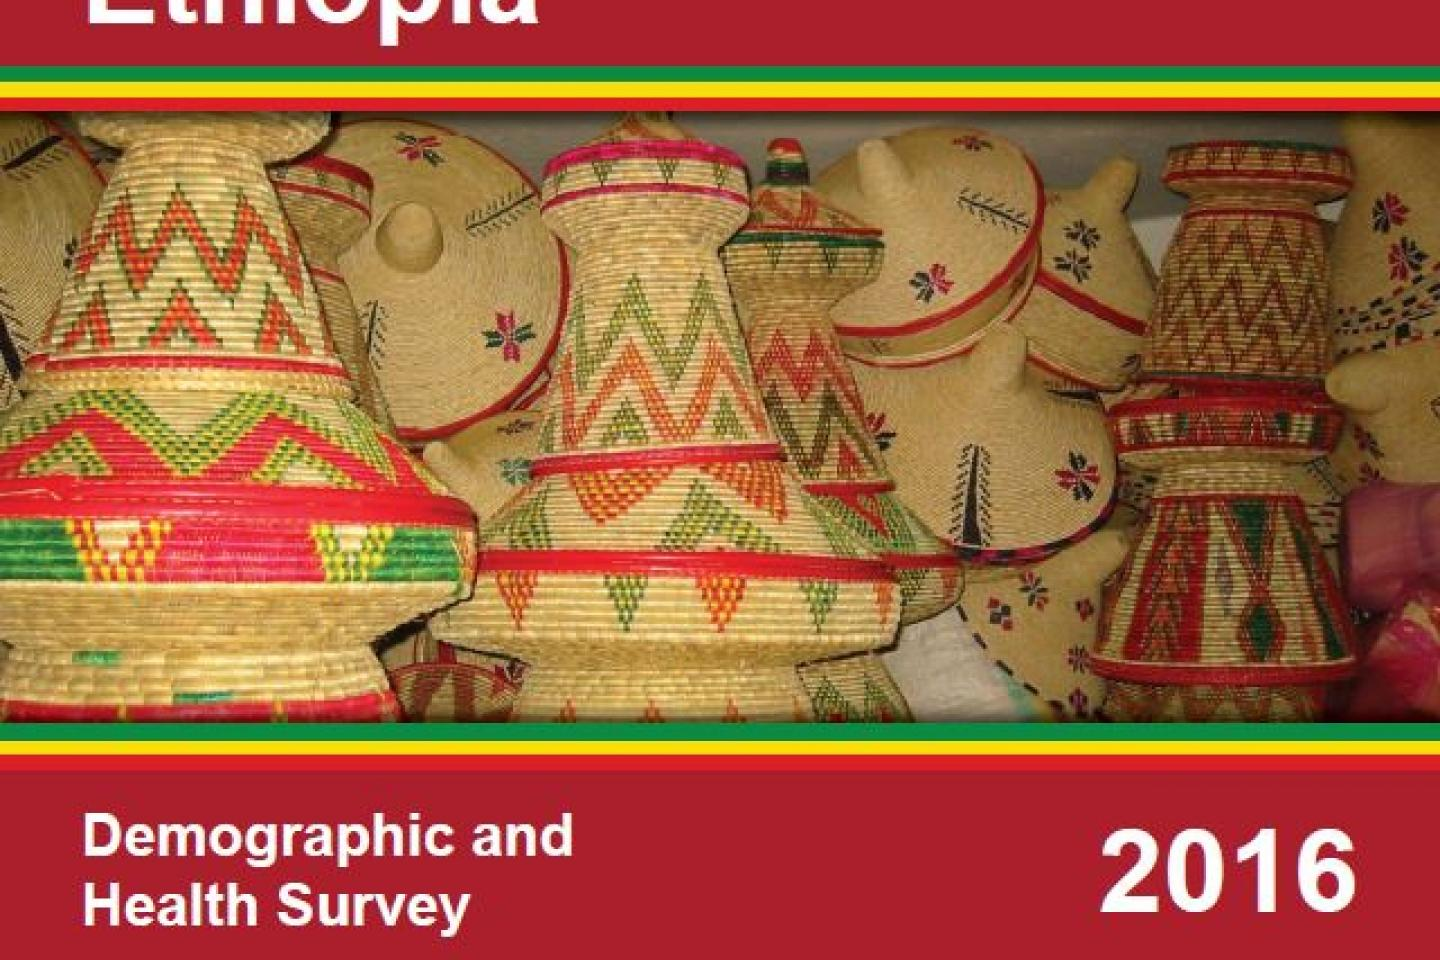 Demographic and health survey | UNICEF Ethiopia